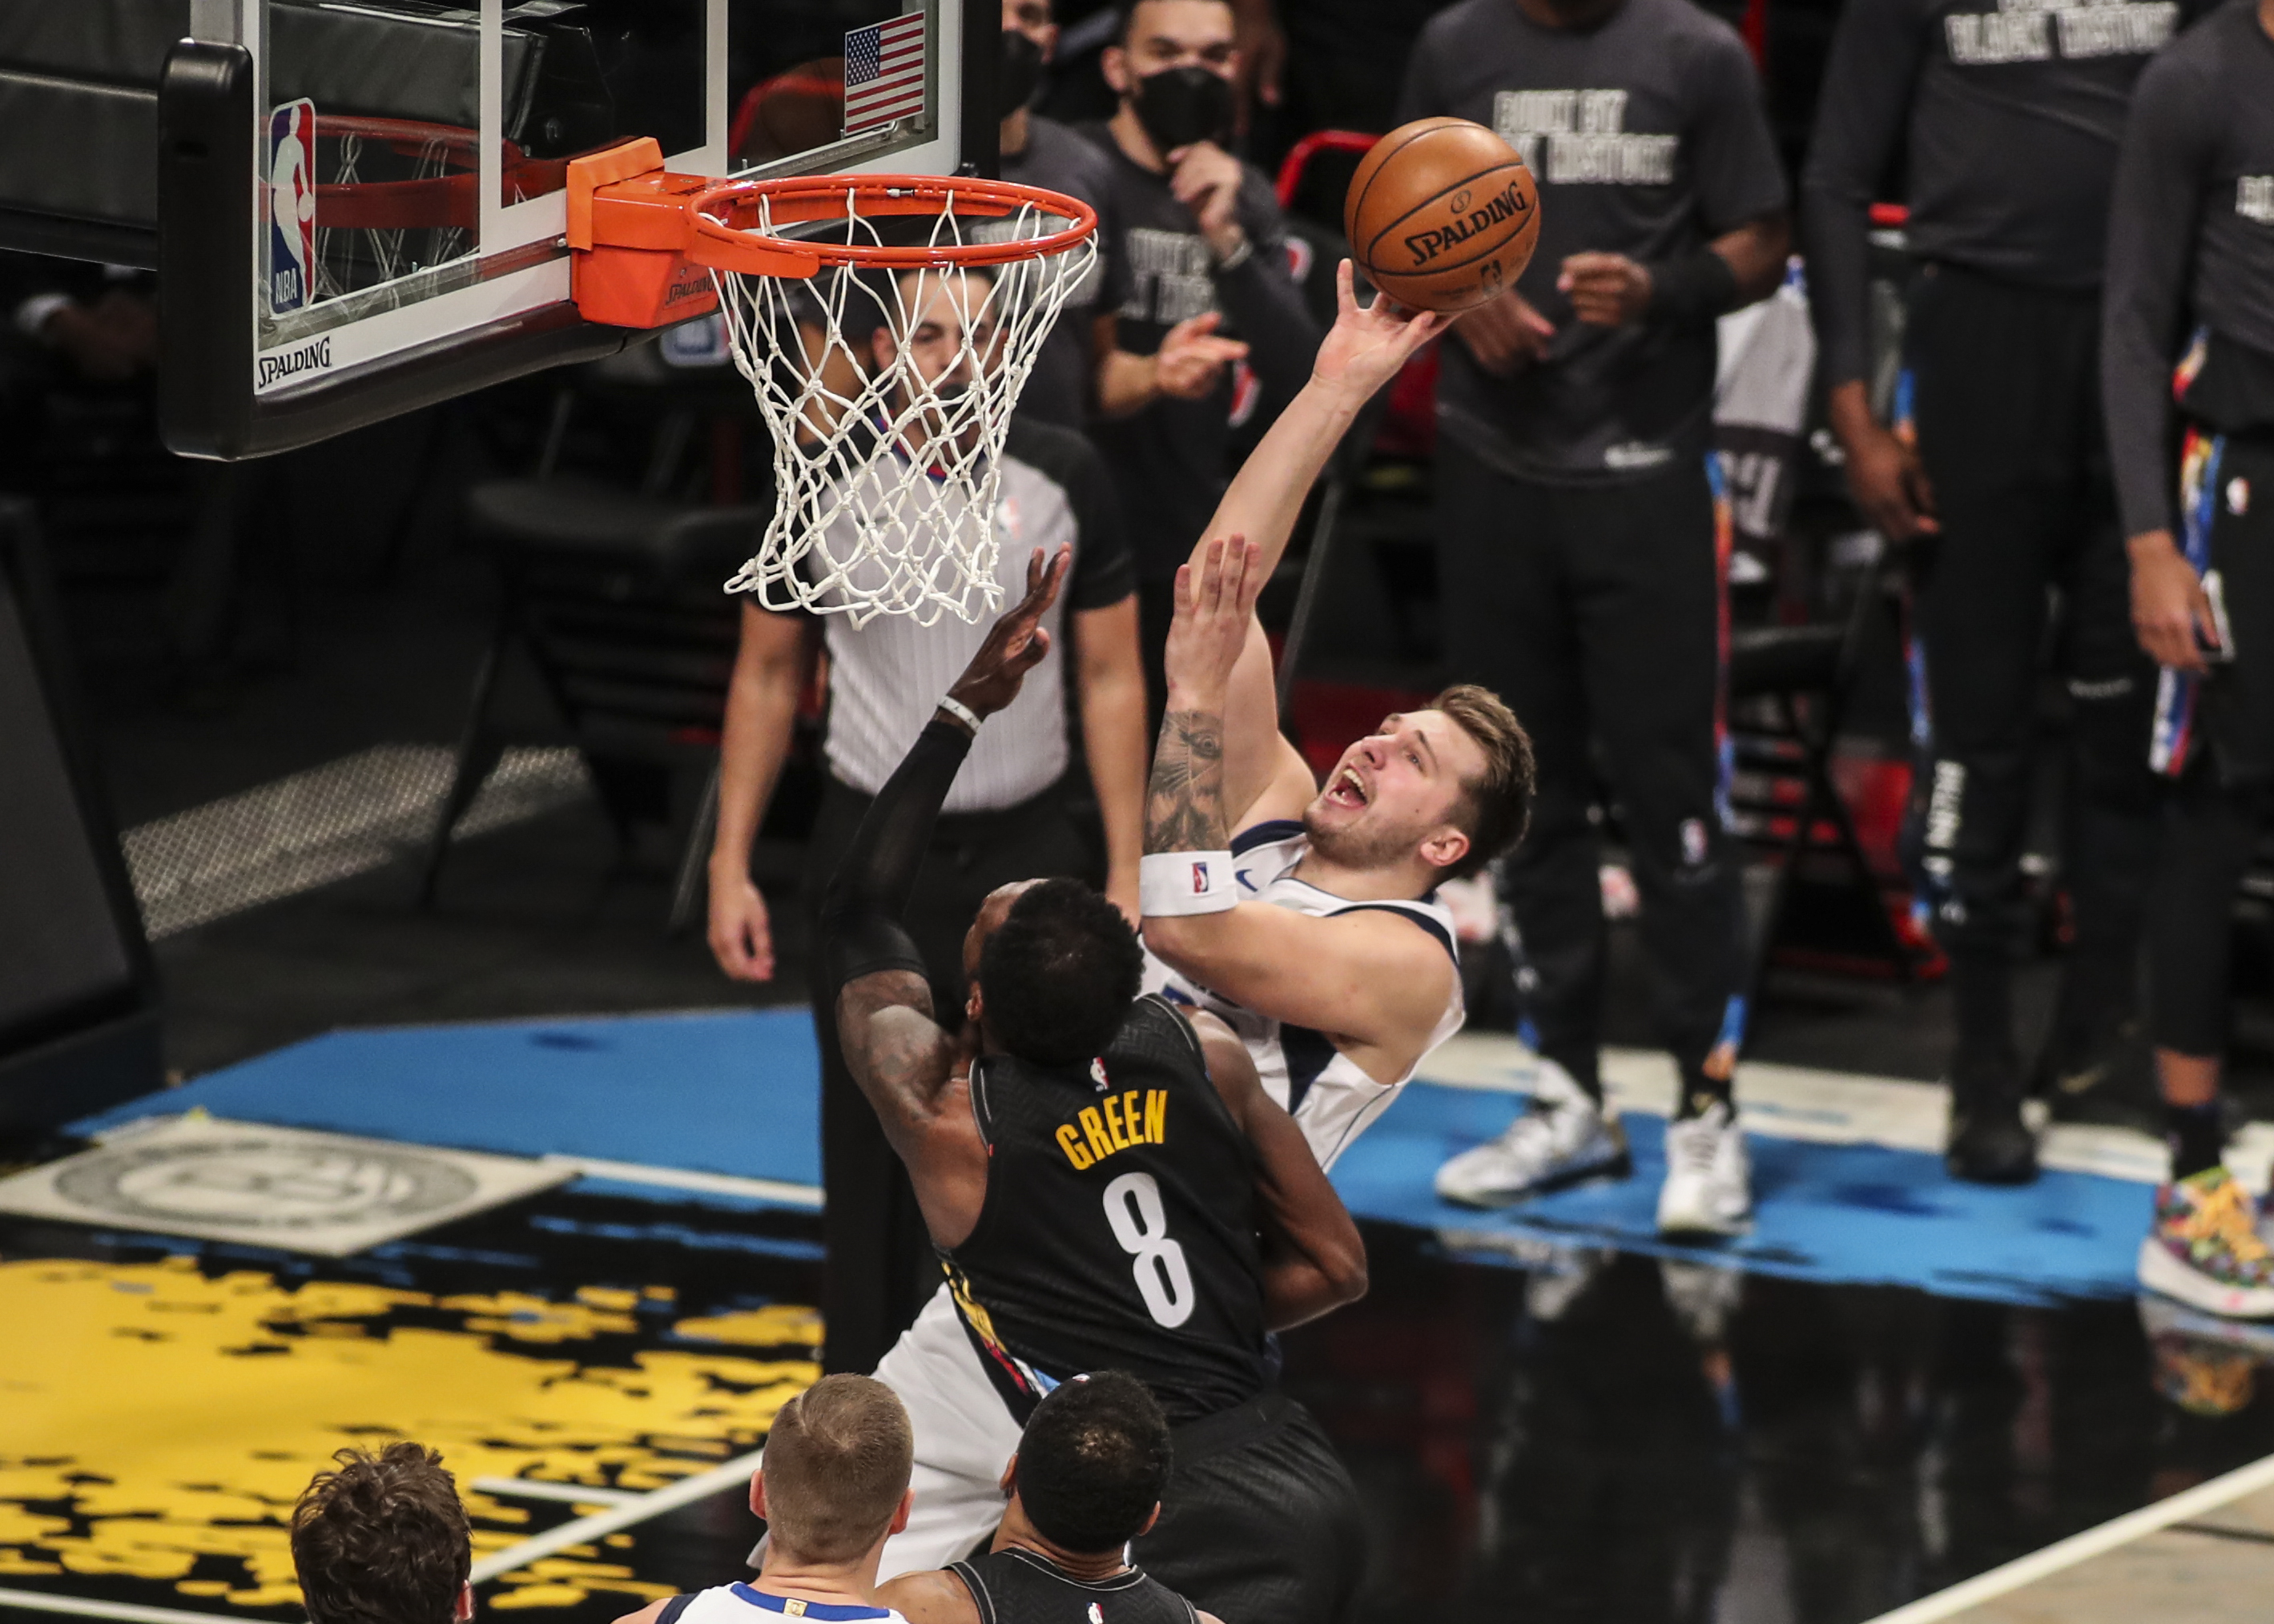 Feb 27, 2021; Brooklyn, New York, USA;  Dallas Mavericks guard Luka Doncic (77) drives to the basket in the third quarter against the Brooklyn Nets at Barclays Center. Mandatory Credit: Wendell Cruz-USA TODAY Sports